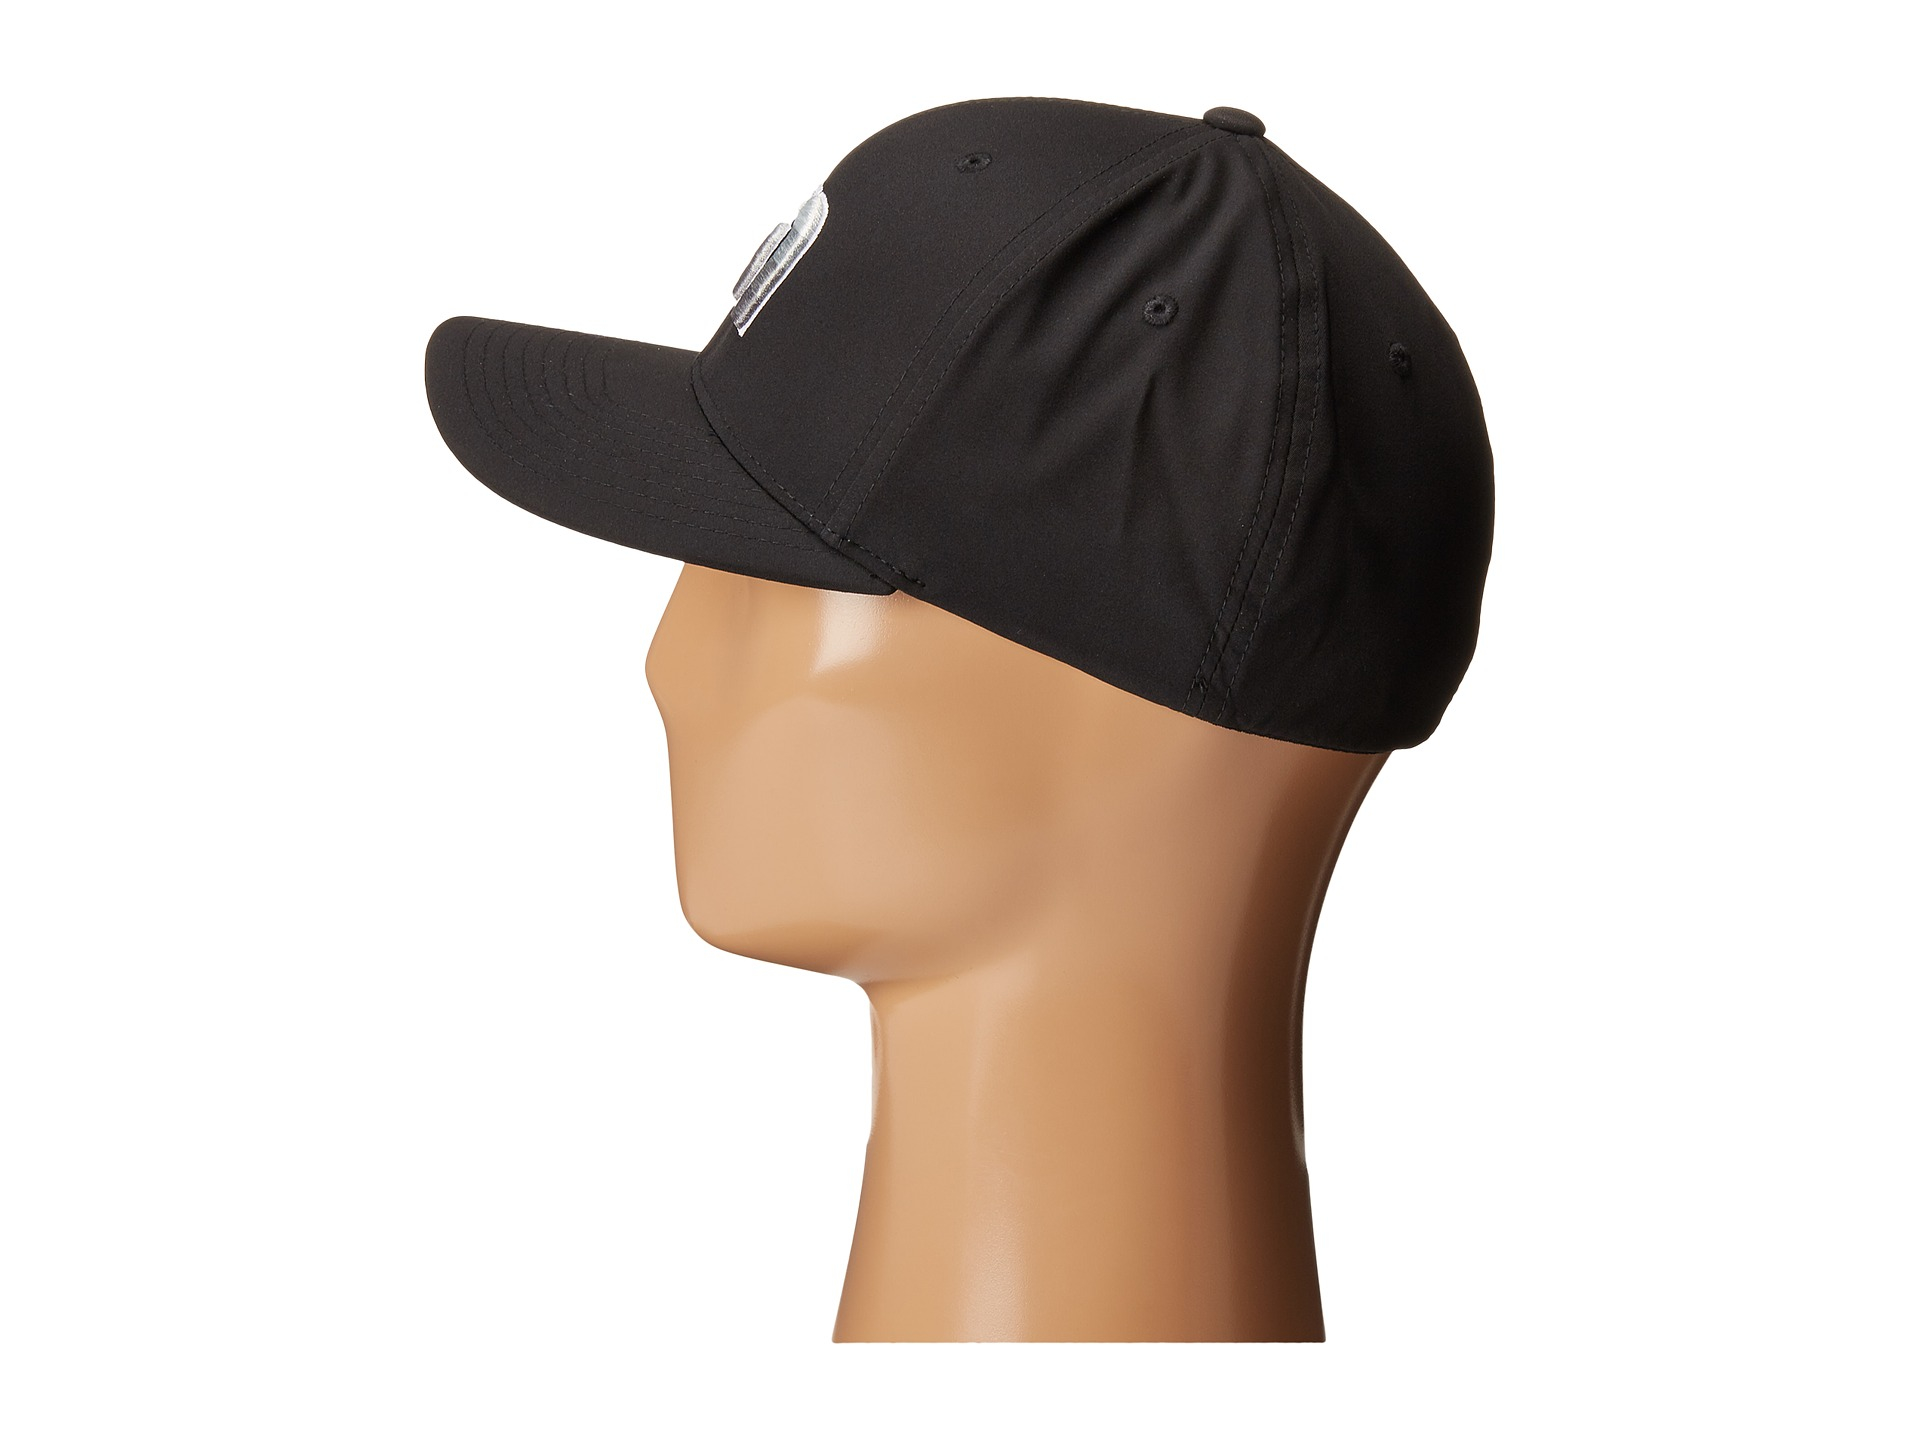 timeless design 7fa3b cbc9a ... sweden lyst travis mathew donnelly hat in black for men 072b3 704f8